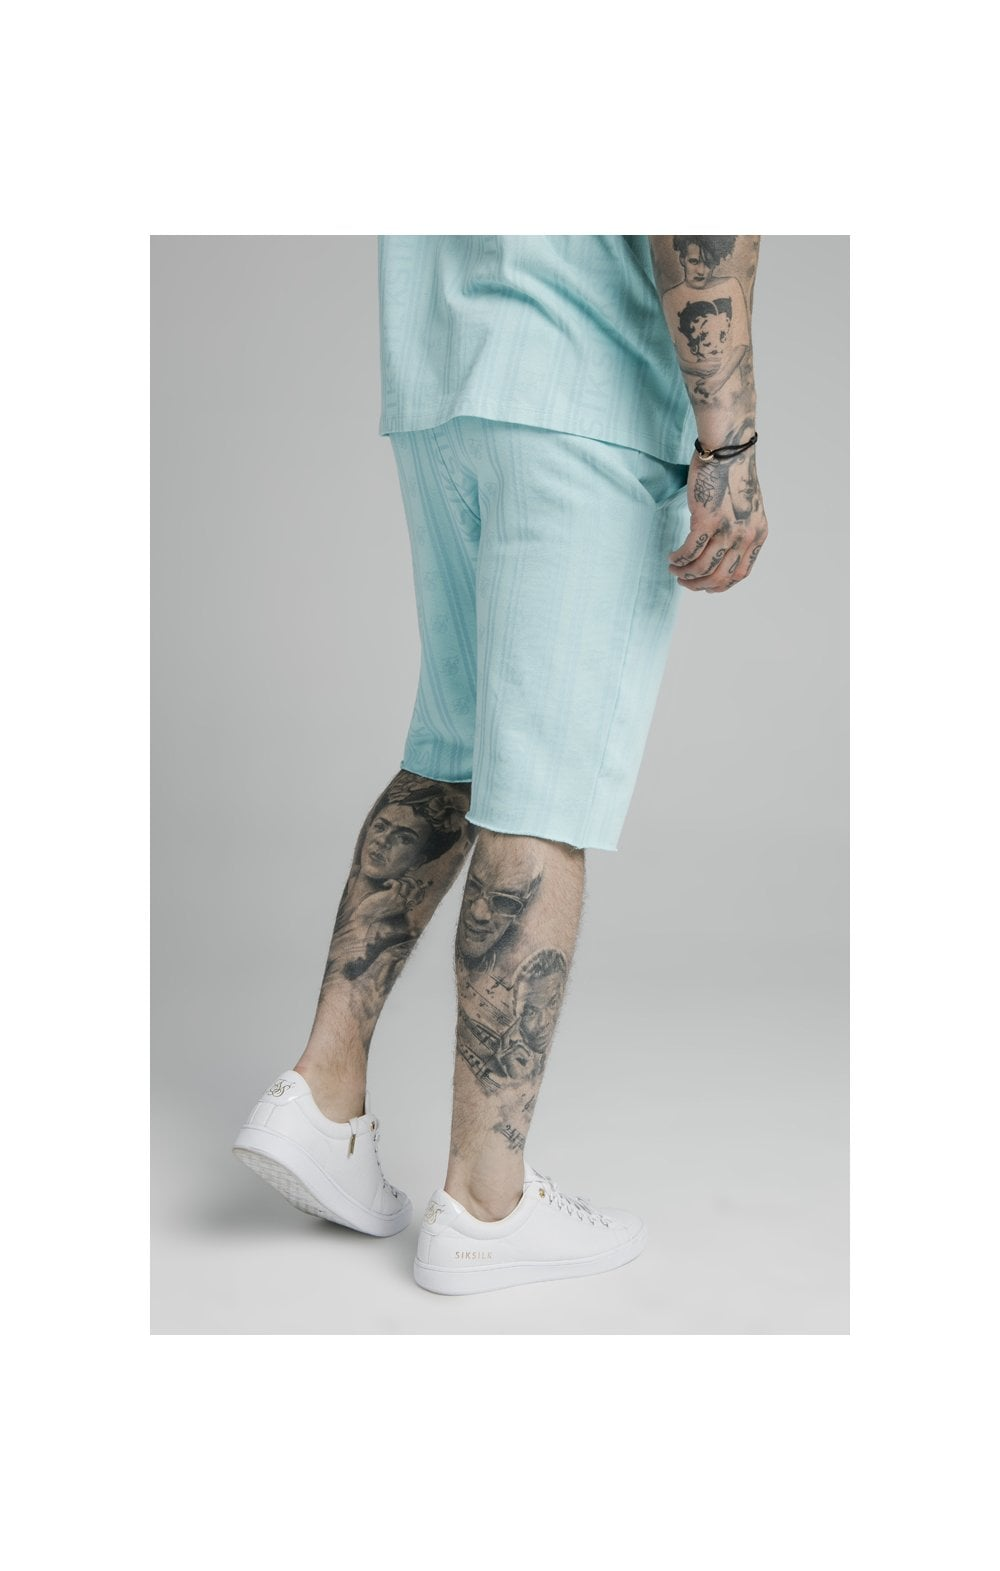 Load image into Gallery viewer, SikSilk Pastel Gym Shorts - Blue (2)